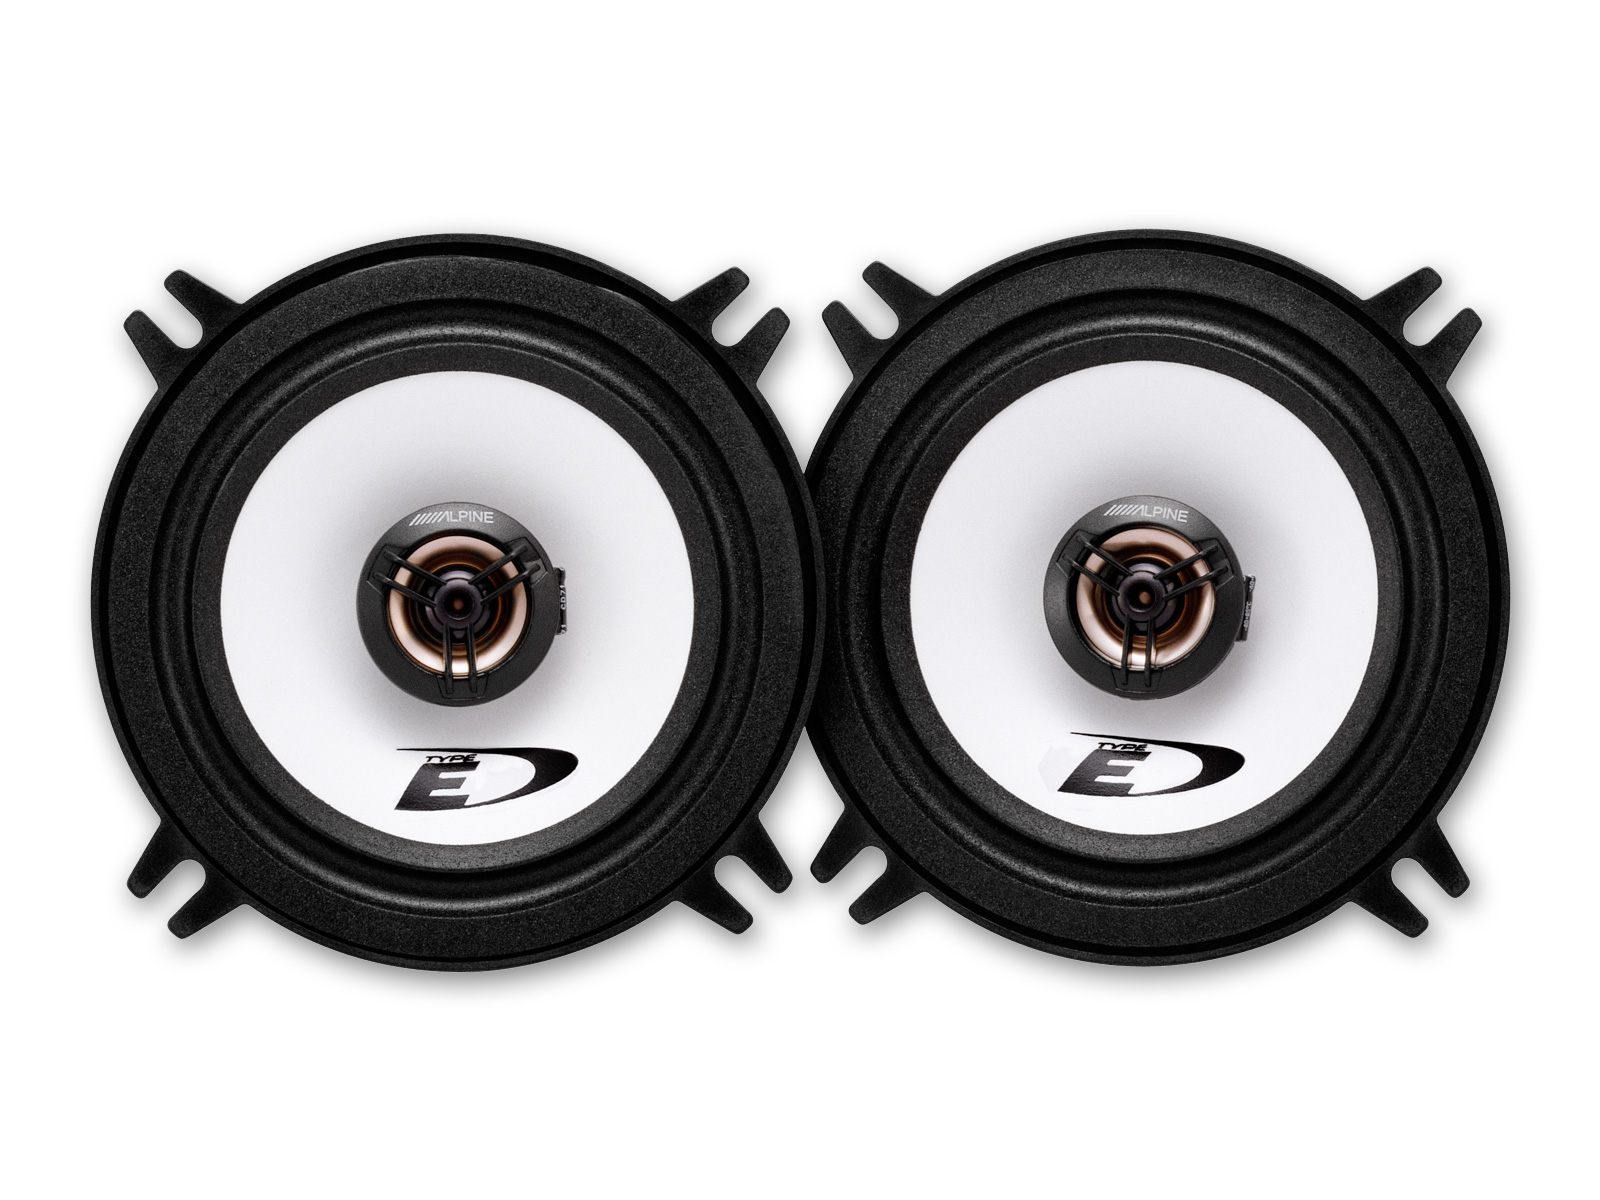 http://italy.alpine-europe.com/fileadmin/images/MainNavigation/Products/Product_pics/14_Speakers/06_CustomFit_Speakers/SXE1325S/productpic_SXE1325S_01.jpg